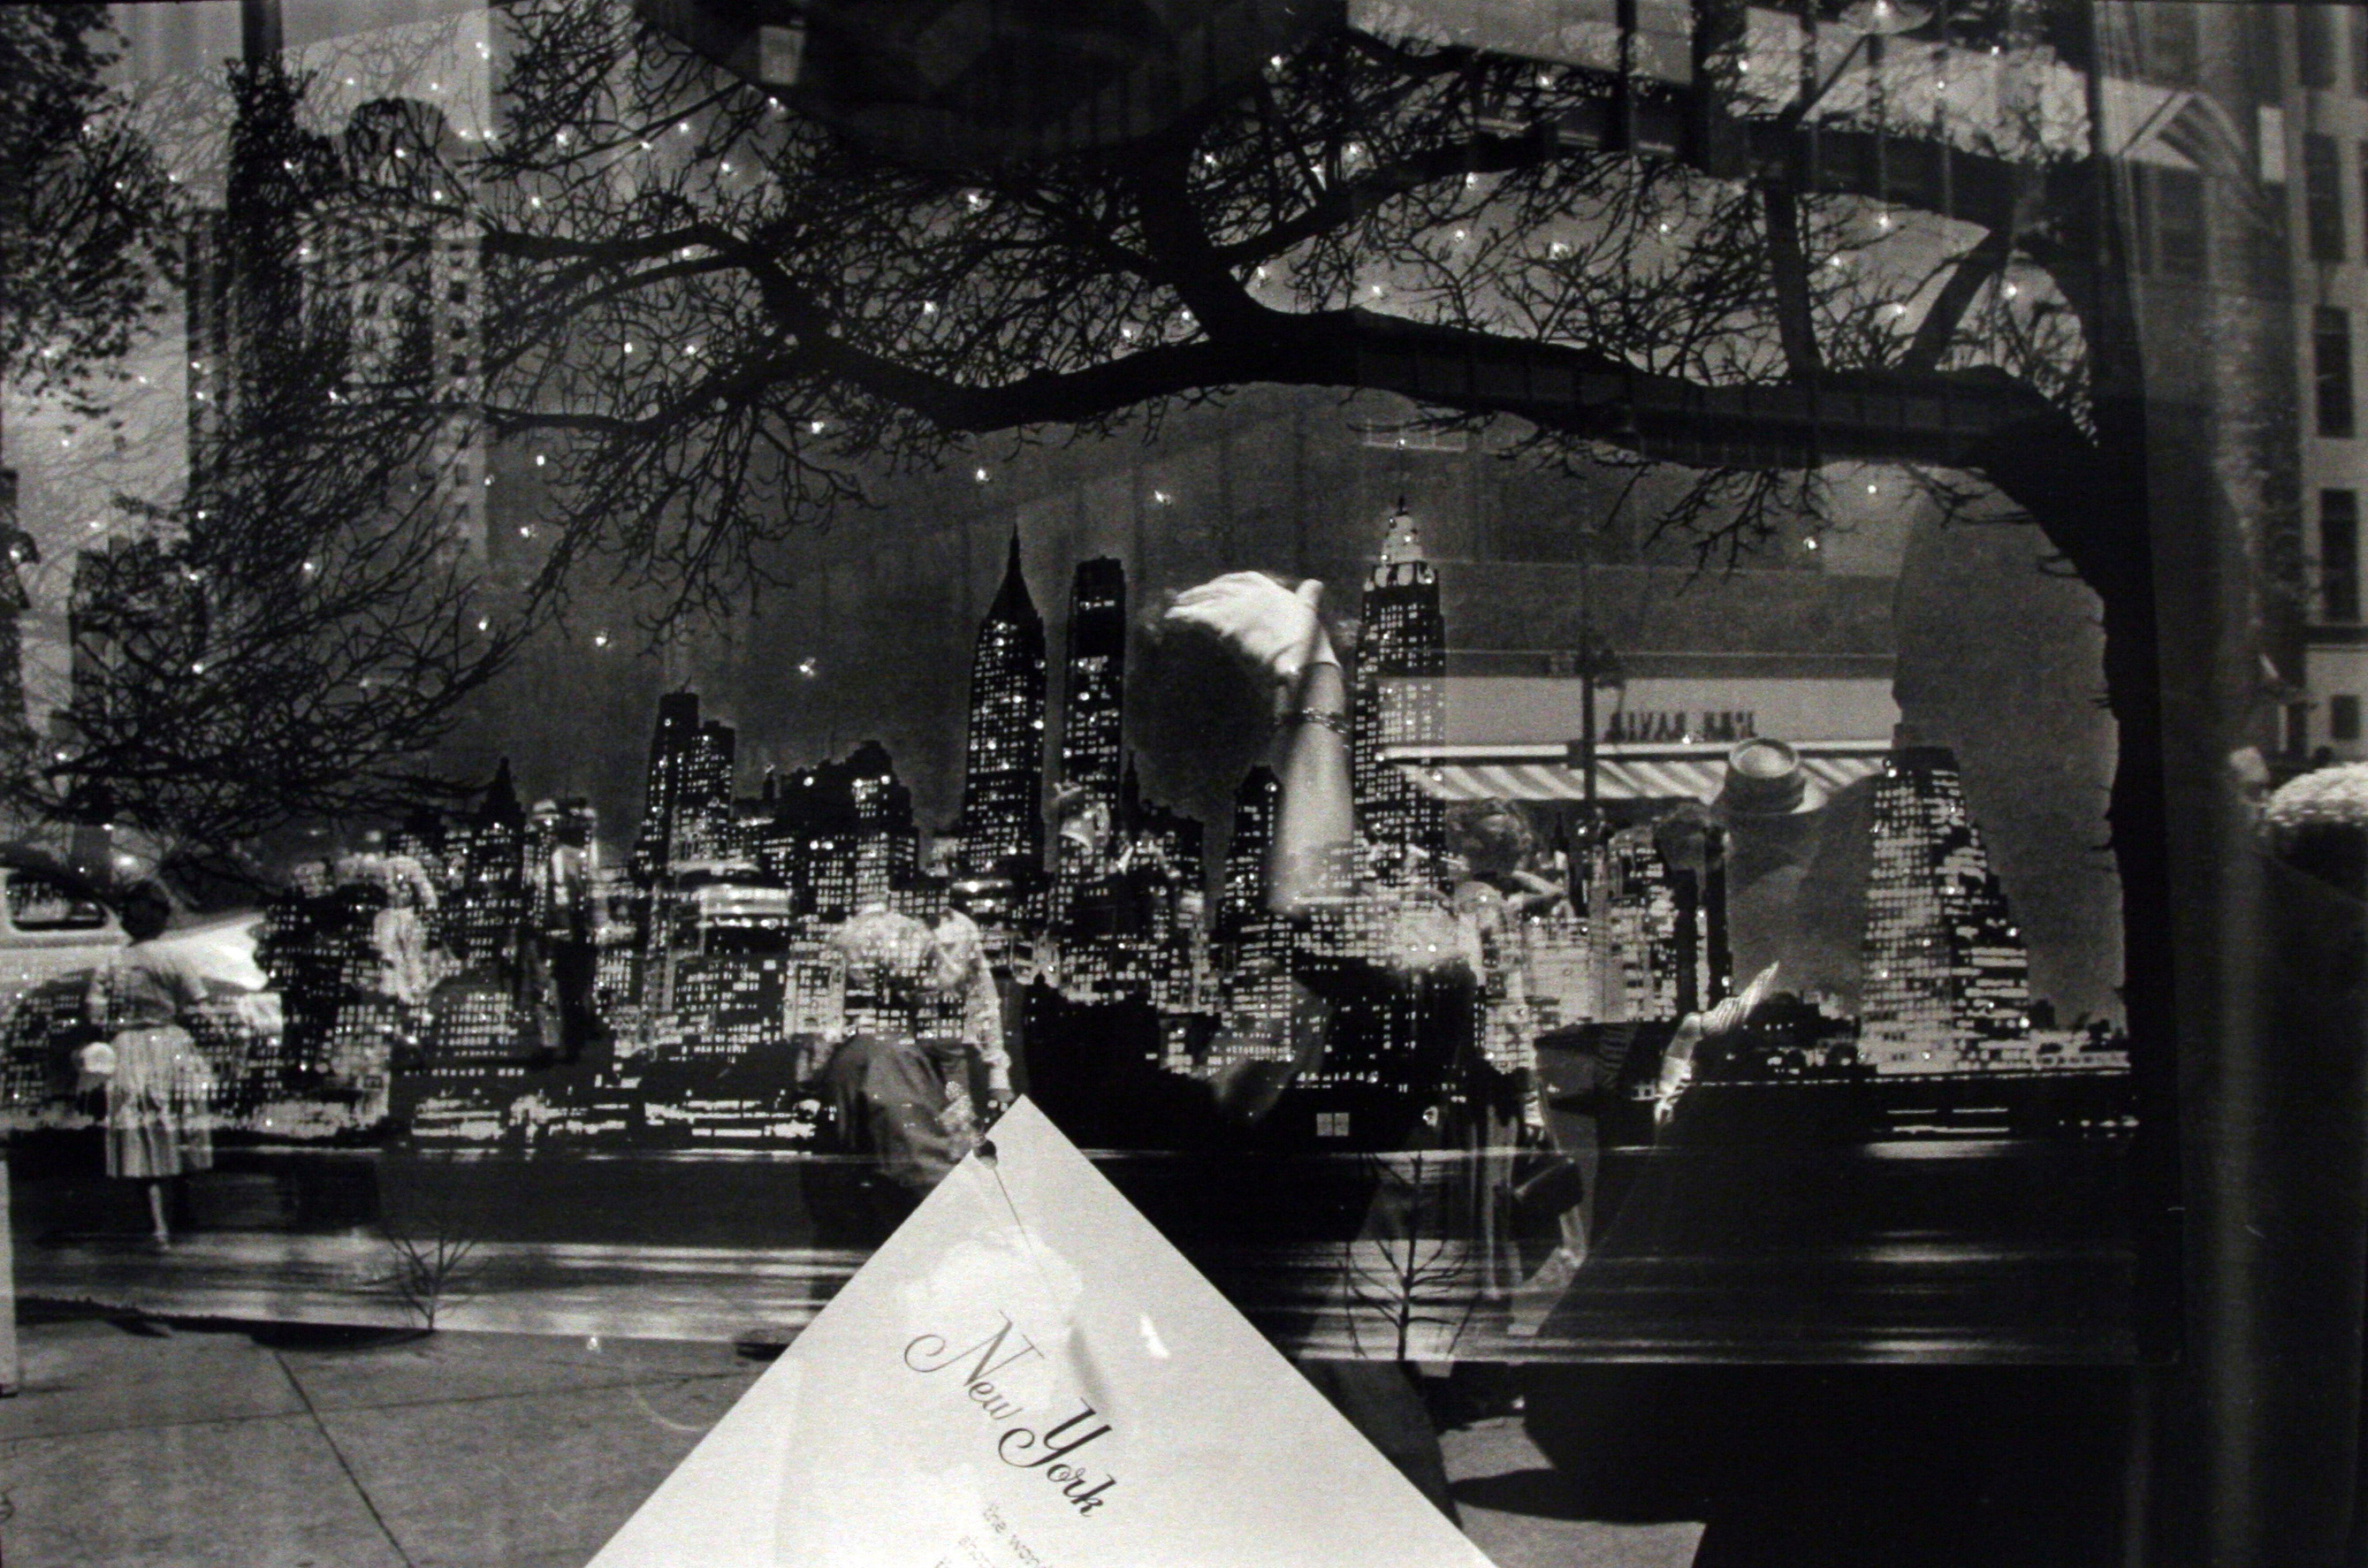 Frank Paulin, <i>Multiple exposure New York Skyline</i>, 1956. Eli and Edythe Broad Art Museum, Michigan State University, Gift of Bruce and Silke Silverstein.